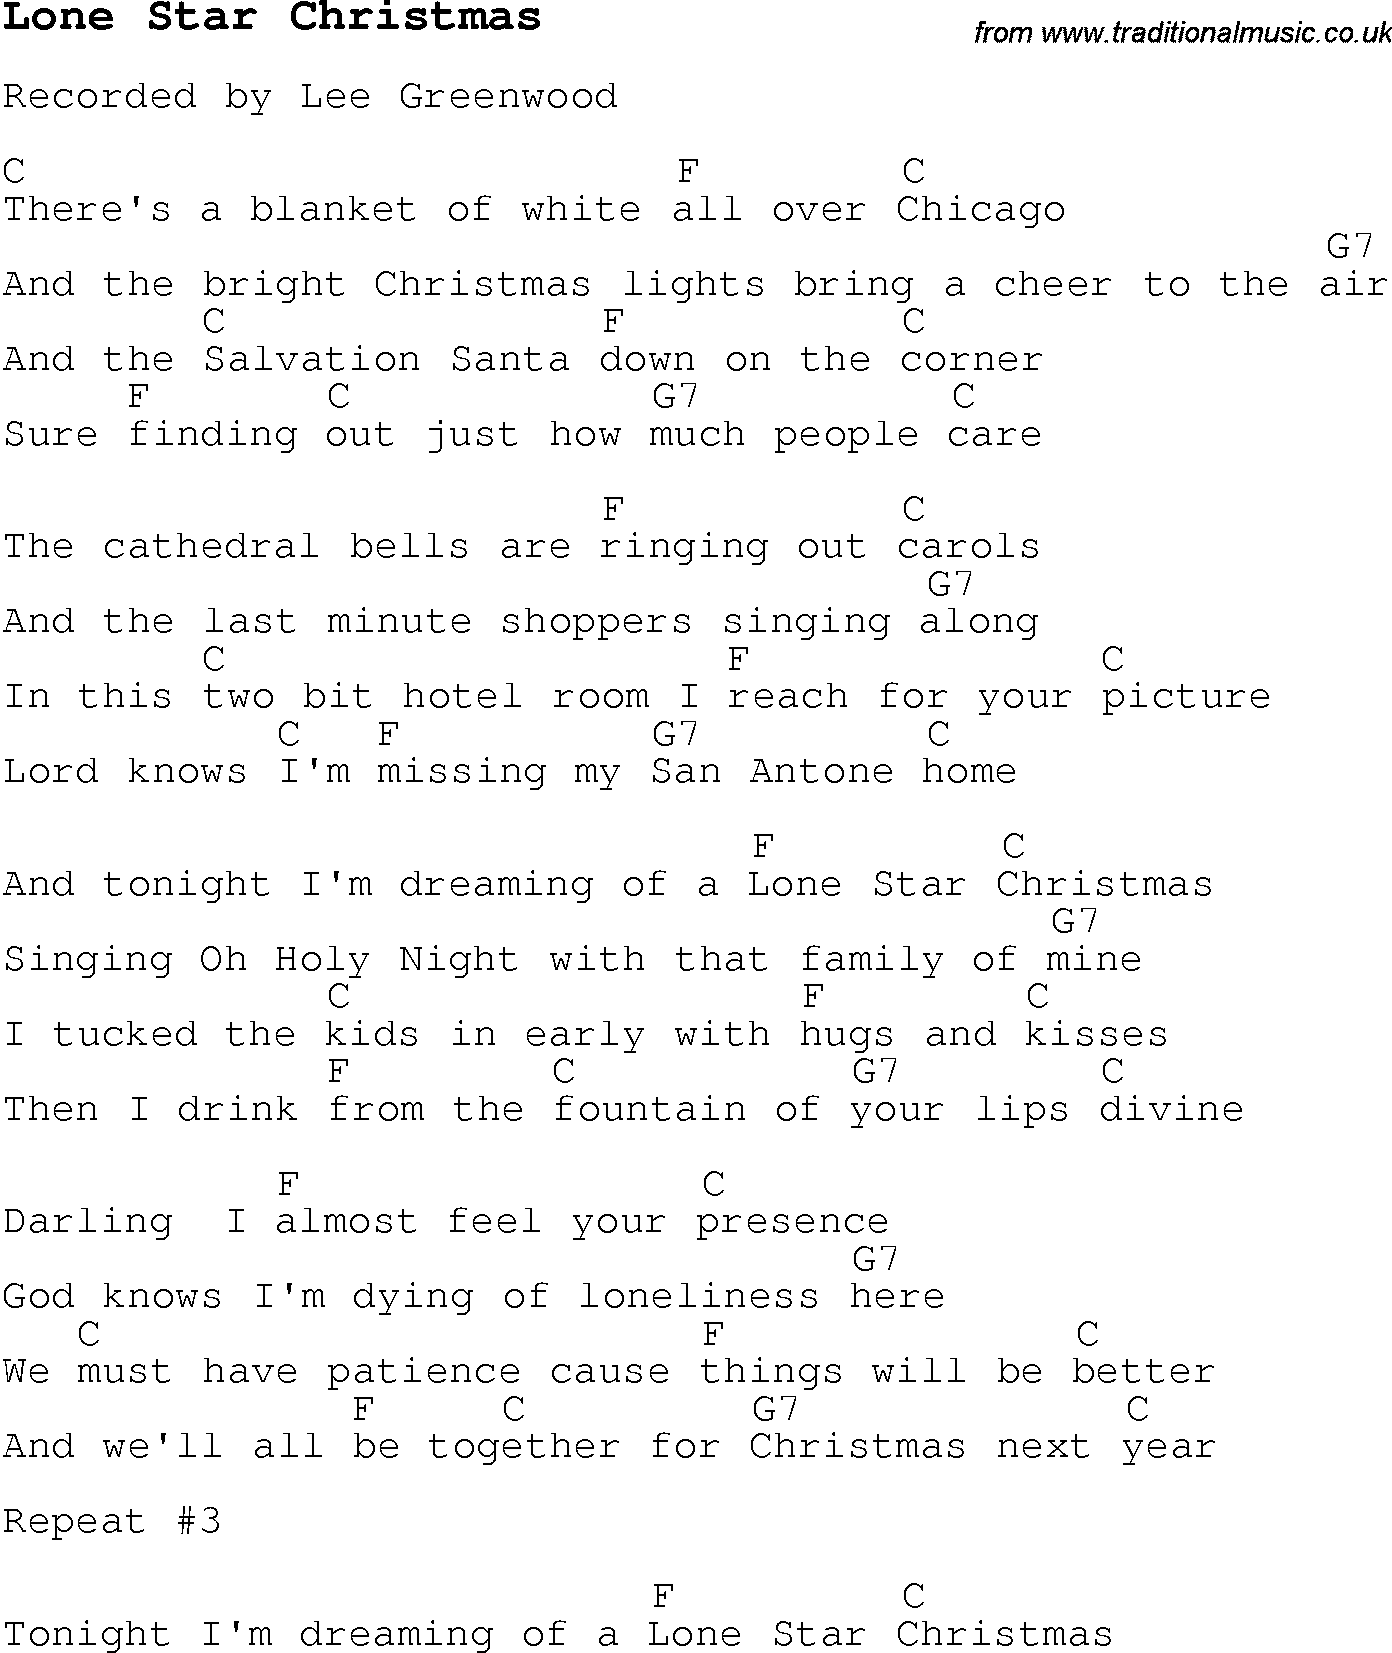 Christmas Carol/Song lyrics with chords for Lone Star Christmas